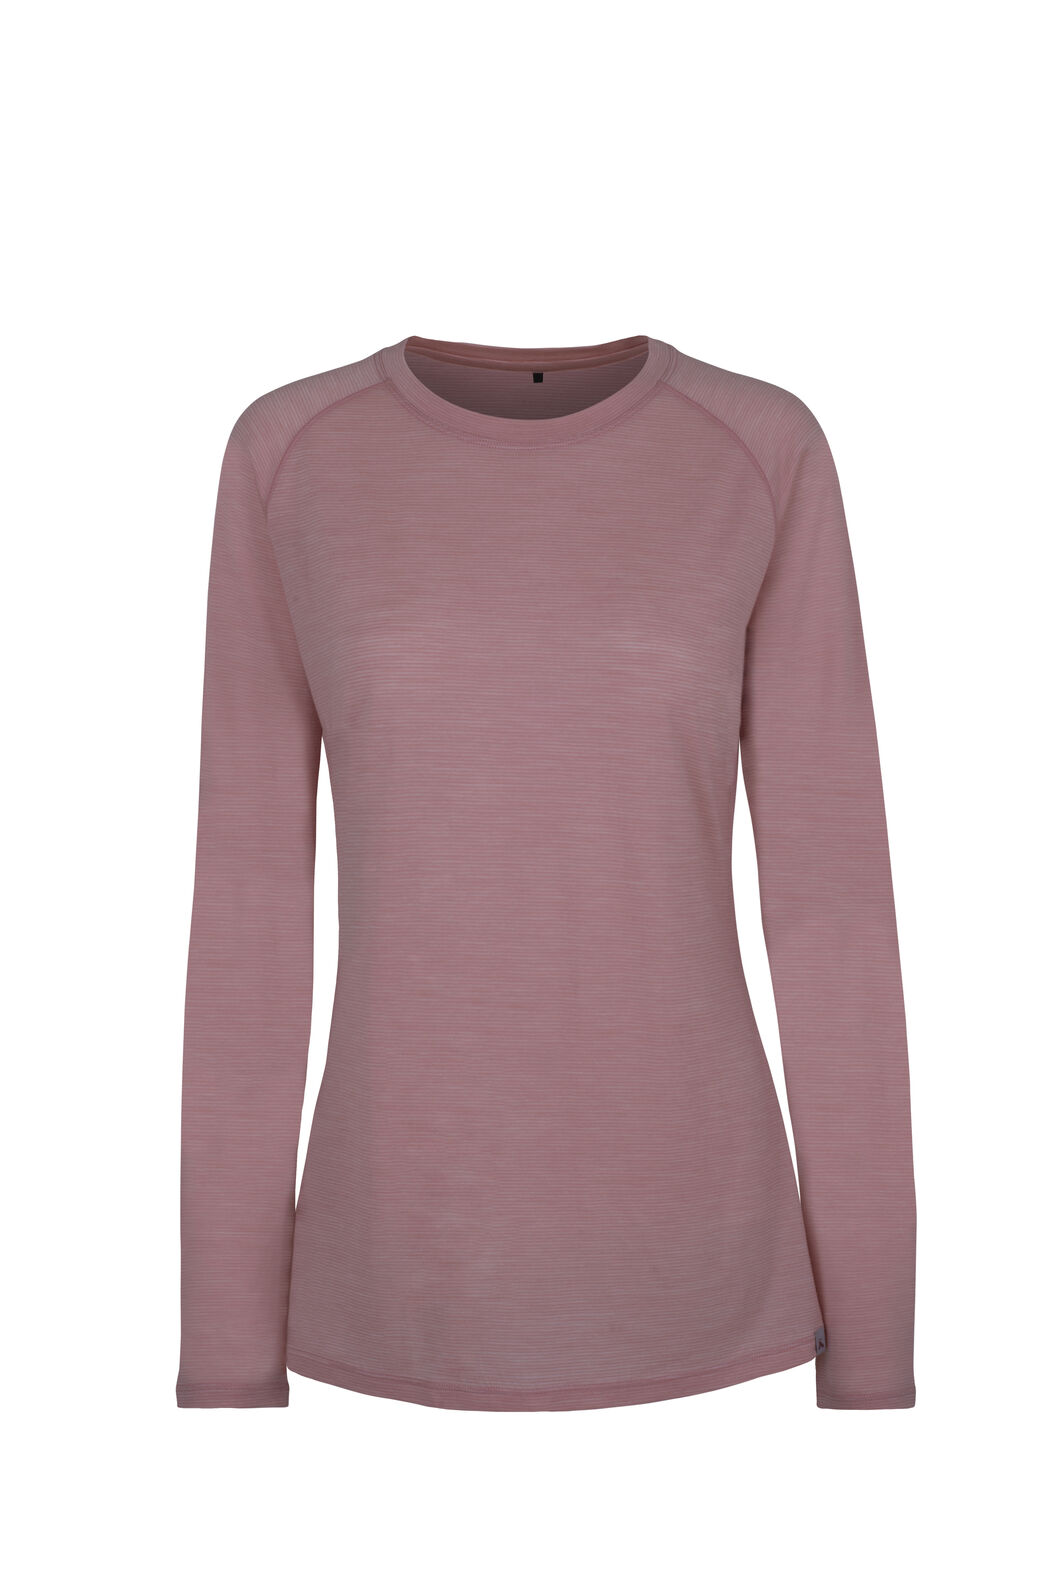 Macpac Hyland Merino Blend Long Sleeve - Women's, Misty Rose, hi-res